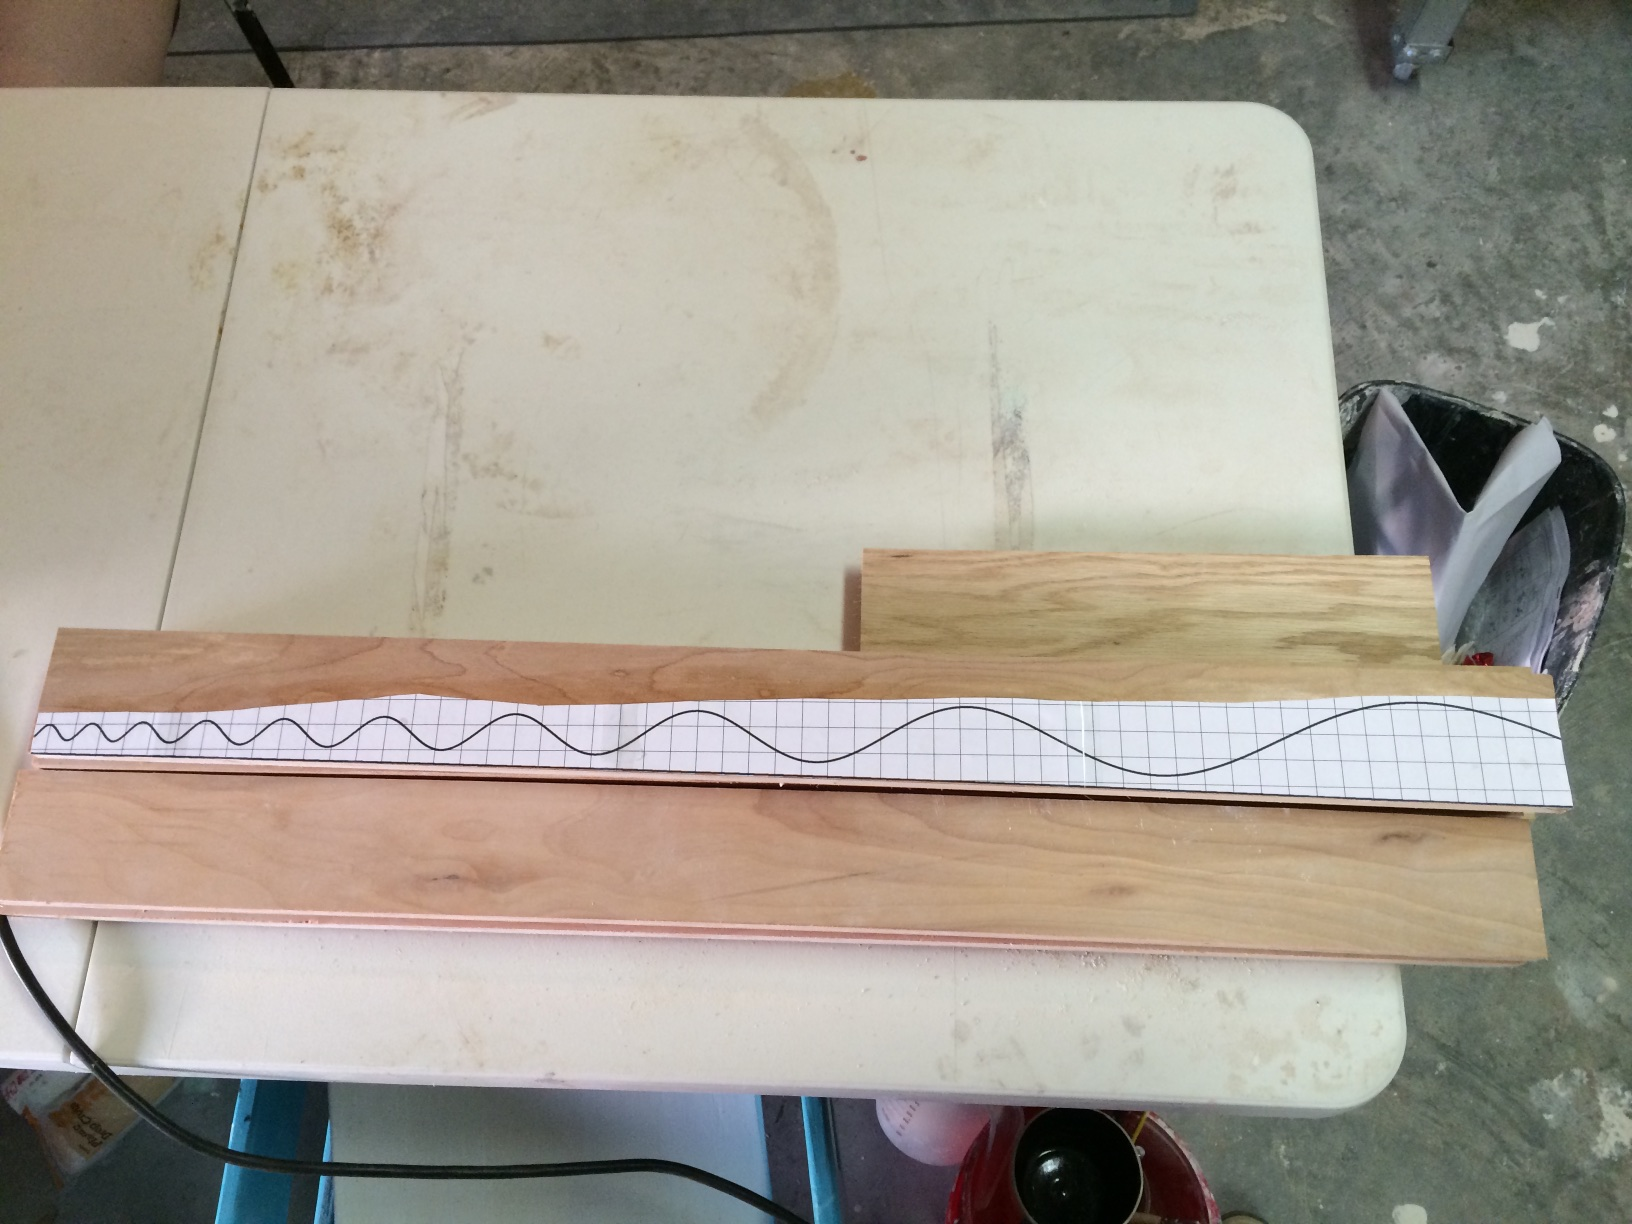 Cut out and stick pattern onto wood strips using adhesive spray.